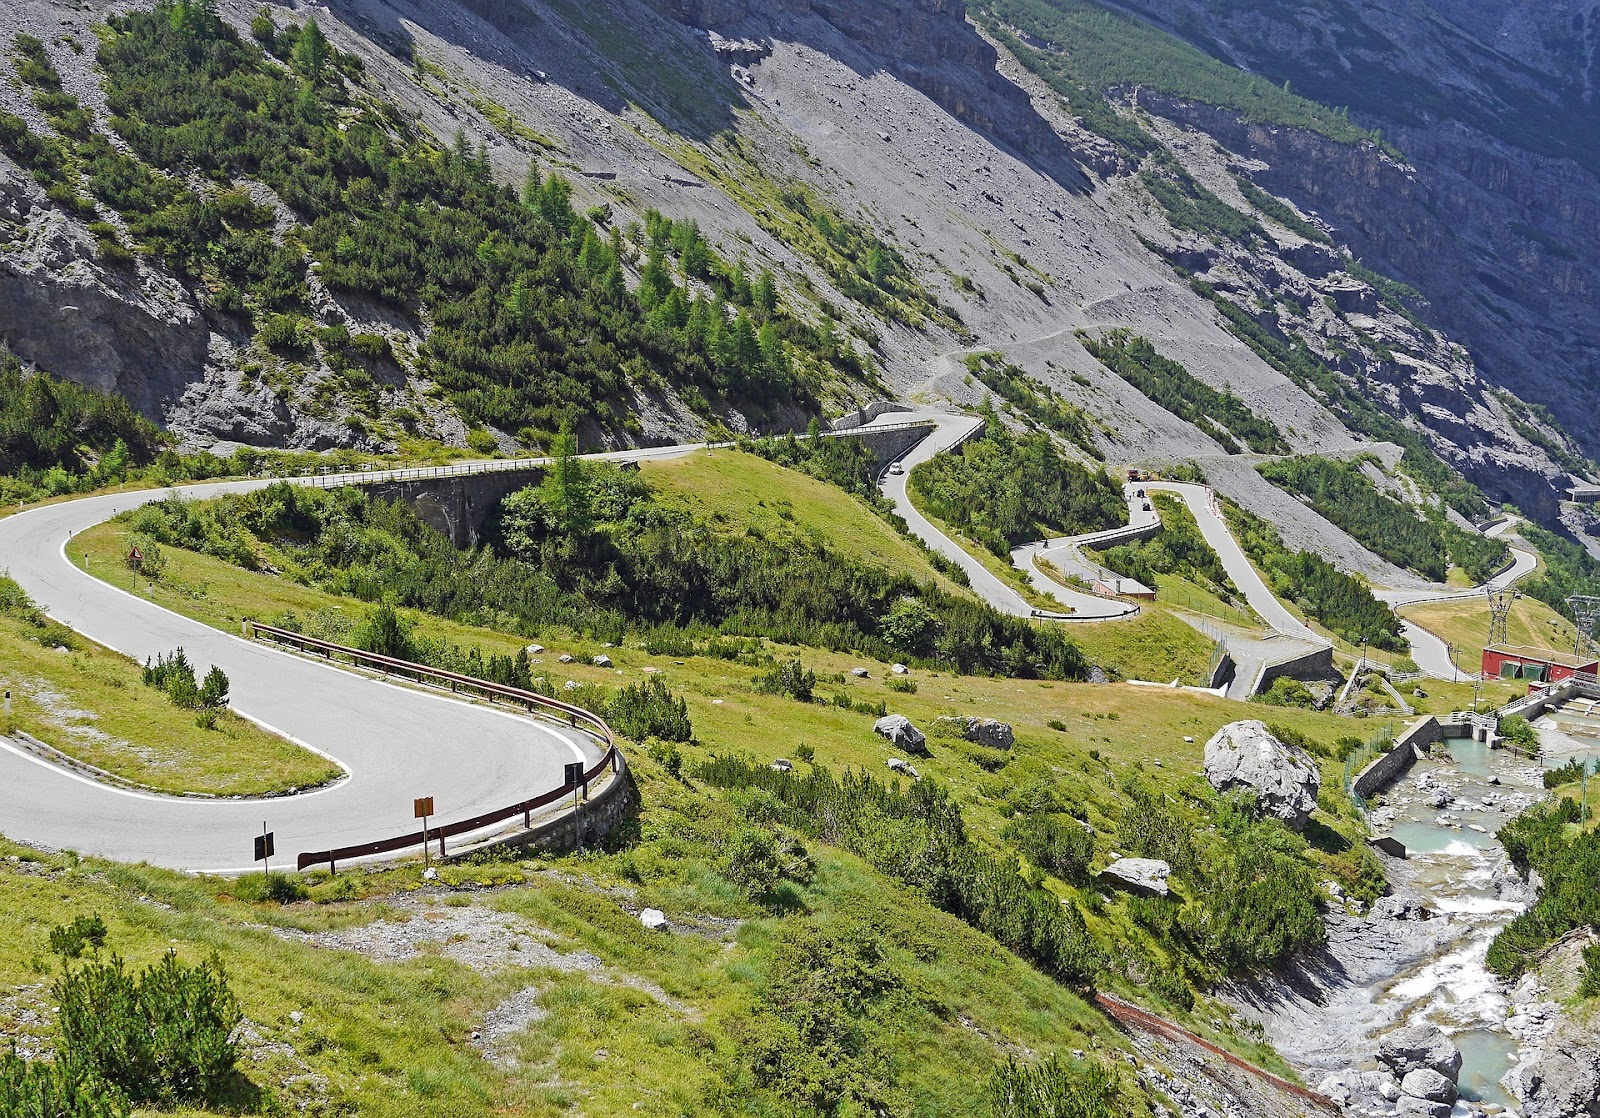 stelvio pass touge twisty uphill paved road in alps surrounded by green grass and stones